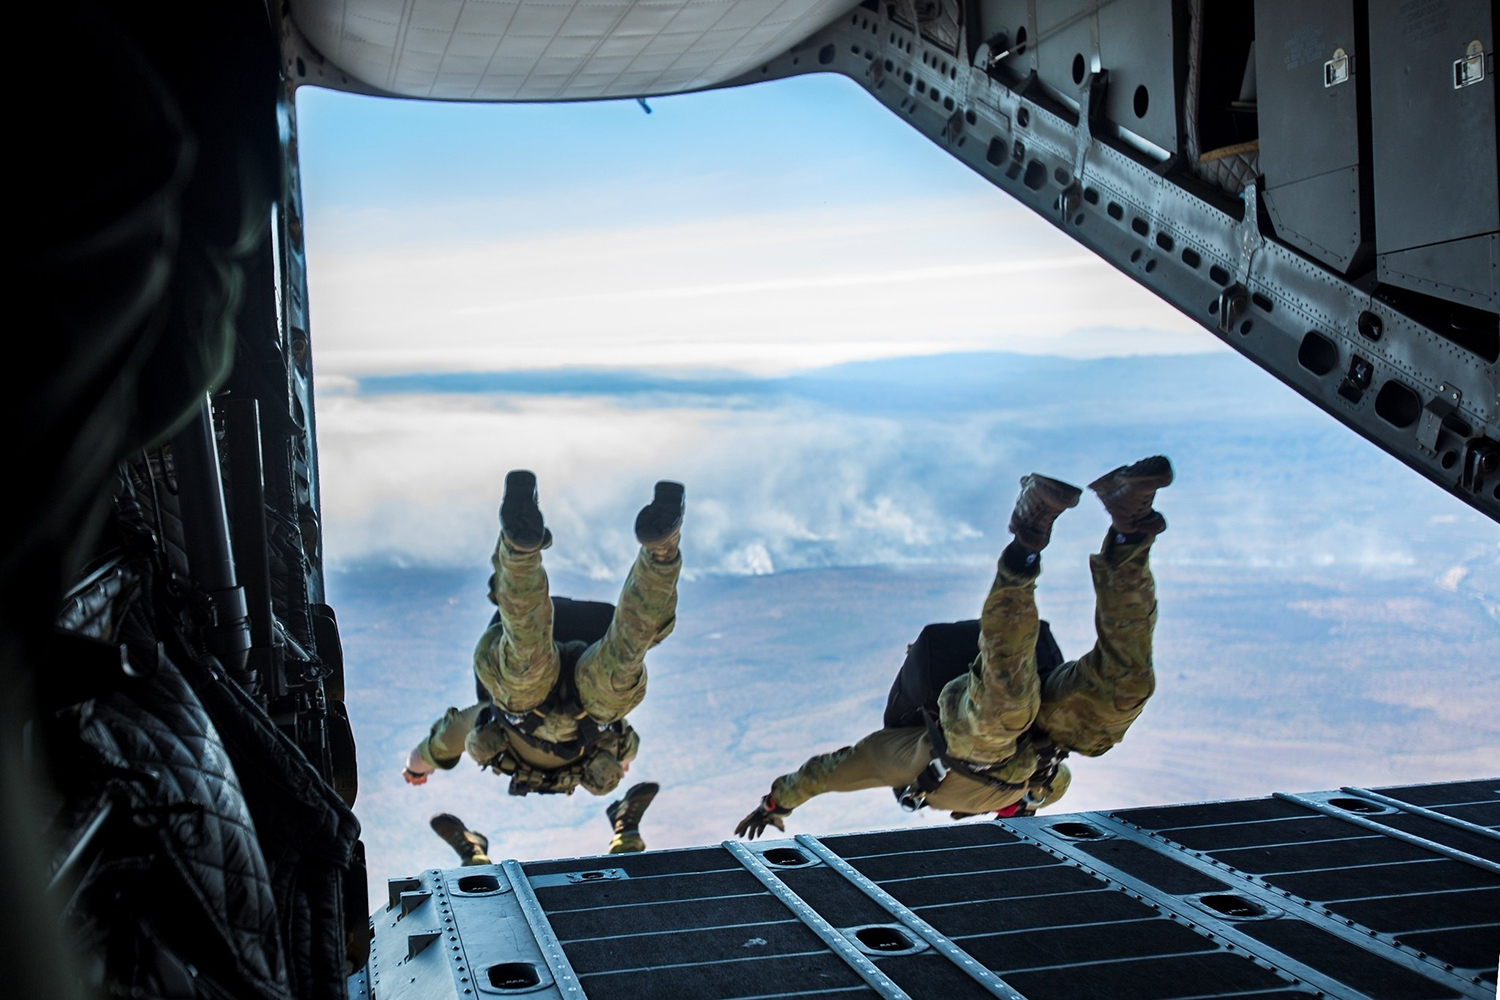 U.S. and Australian special operations forces conduct a high-altitude low-opening parachute jump from a Royal Australian Air Force C-27J Spartan on July 17, 2019, during Talisman Sabre in Queensland, Australia. (Lance Cpl. Nicole Rogge/Marine Corps)